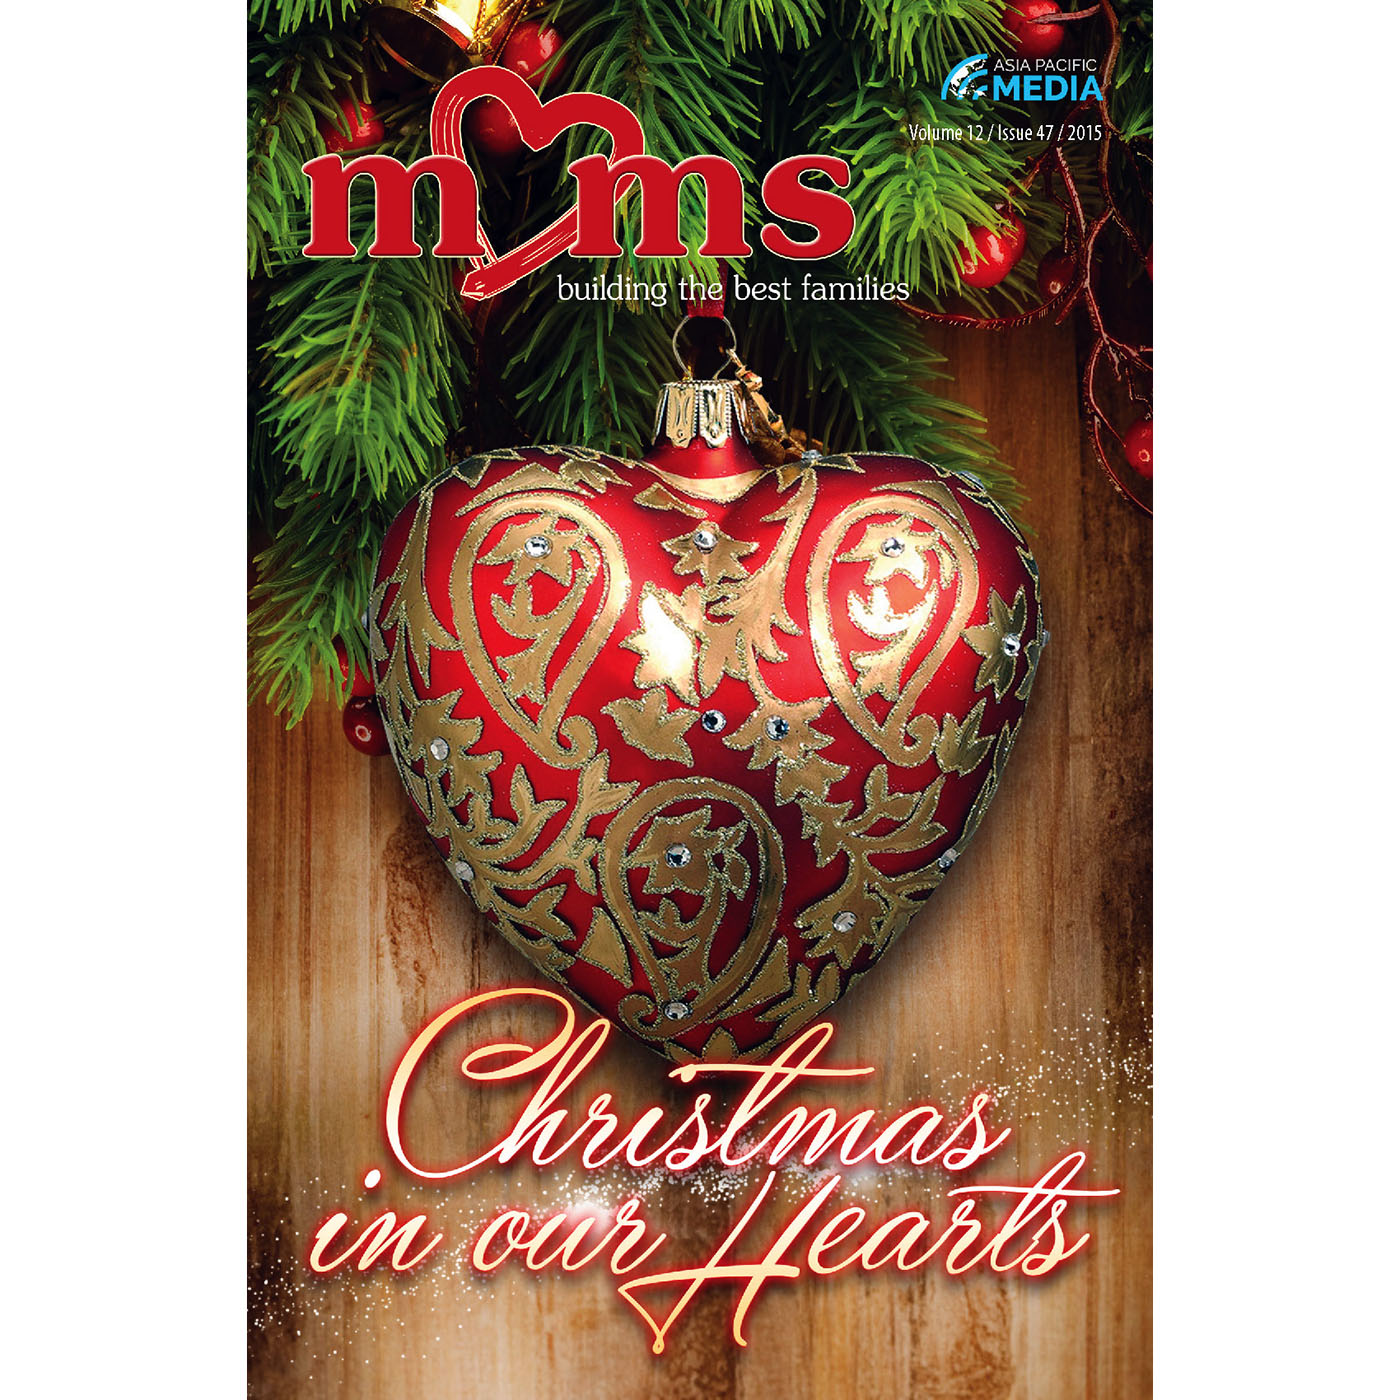 Christmas In Our Hearts.Moms Magazine October 2015 Issue Christmas In Our Hearts Apmedia